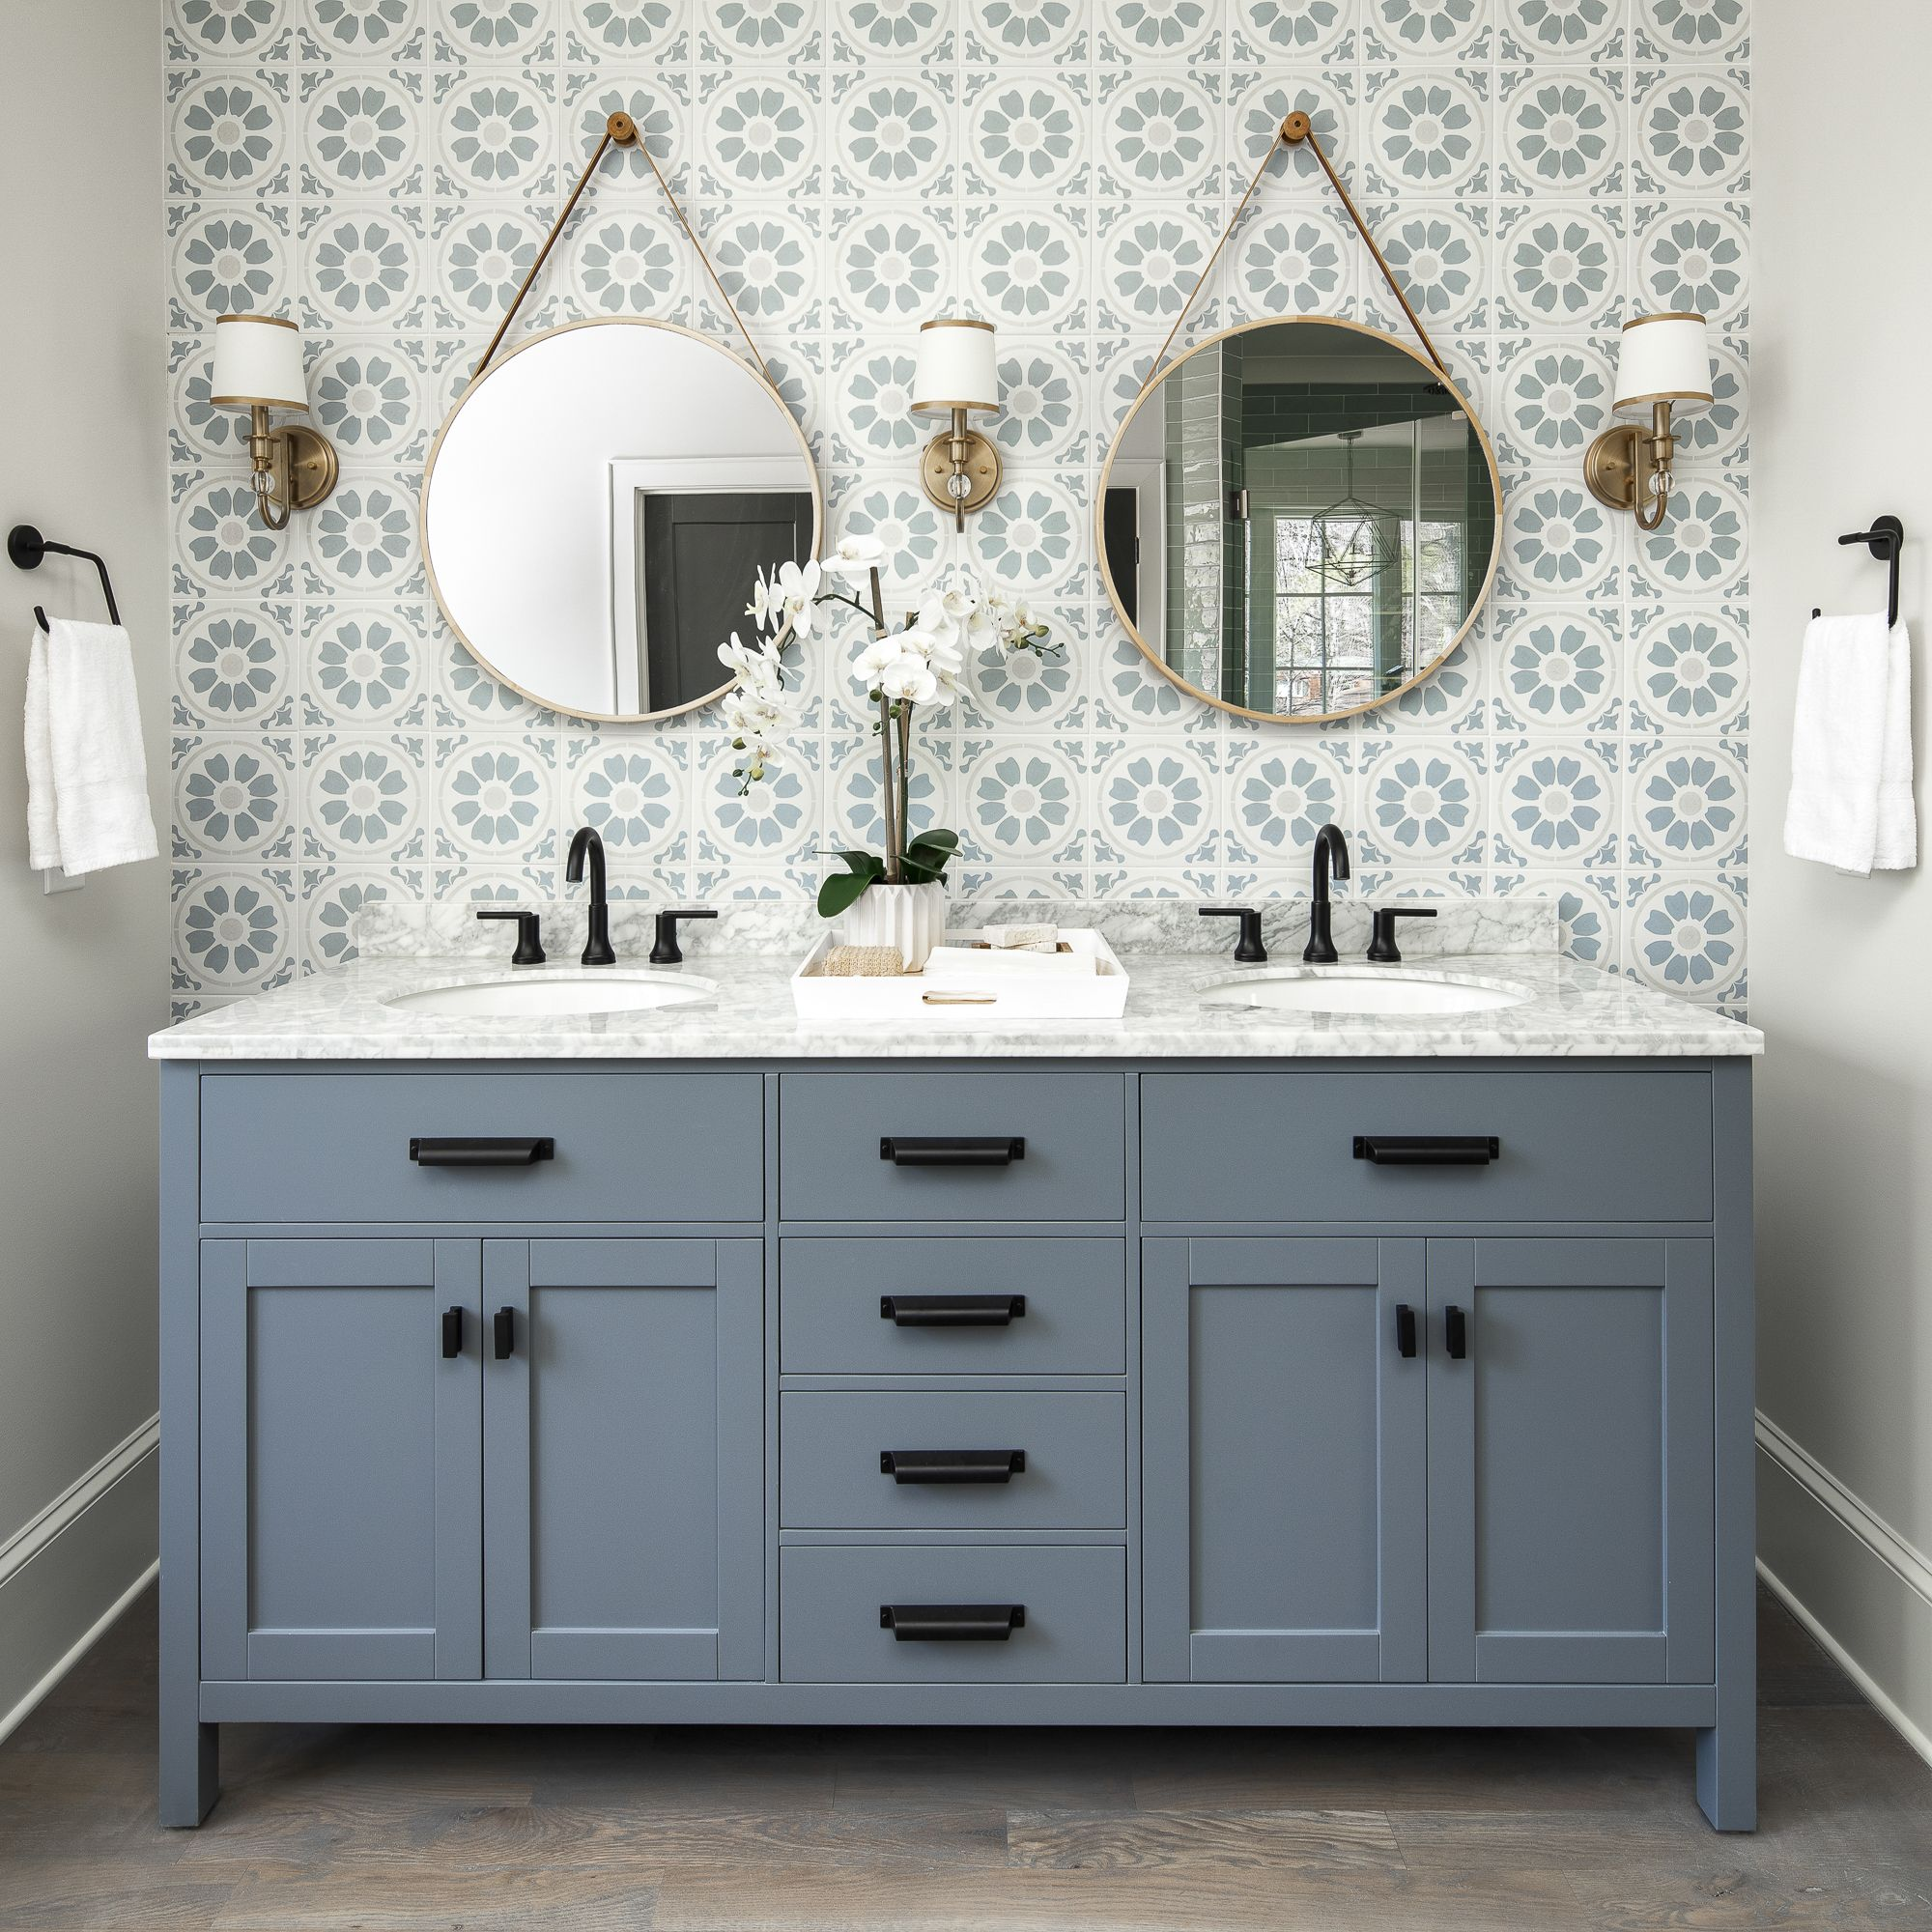 Blue Bathroom Accent Wall: Striking Master Vanity Wall With Floor To Ceiling